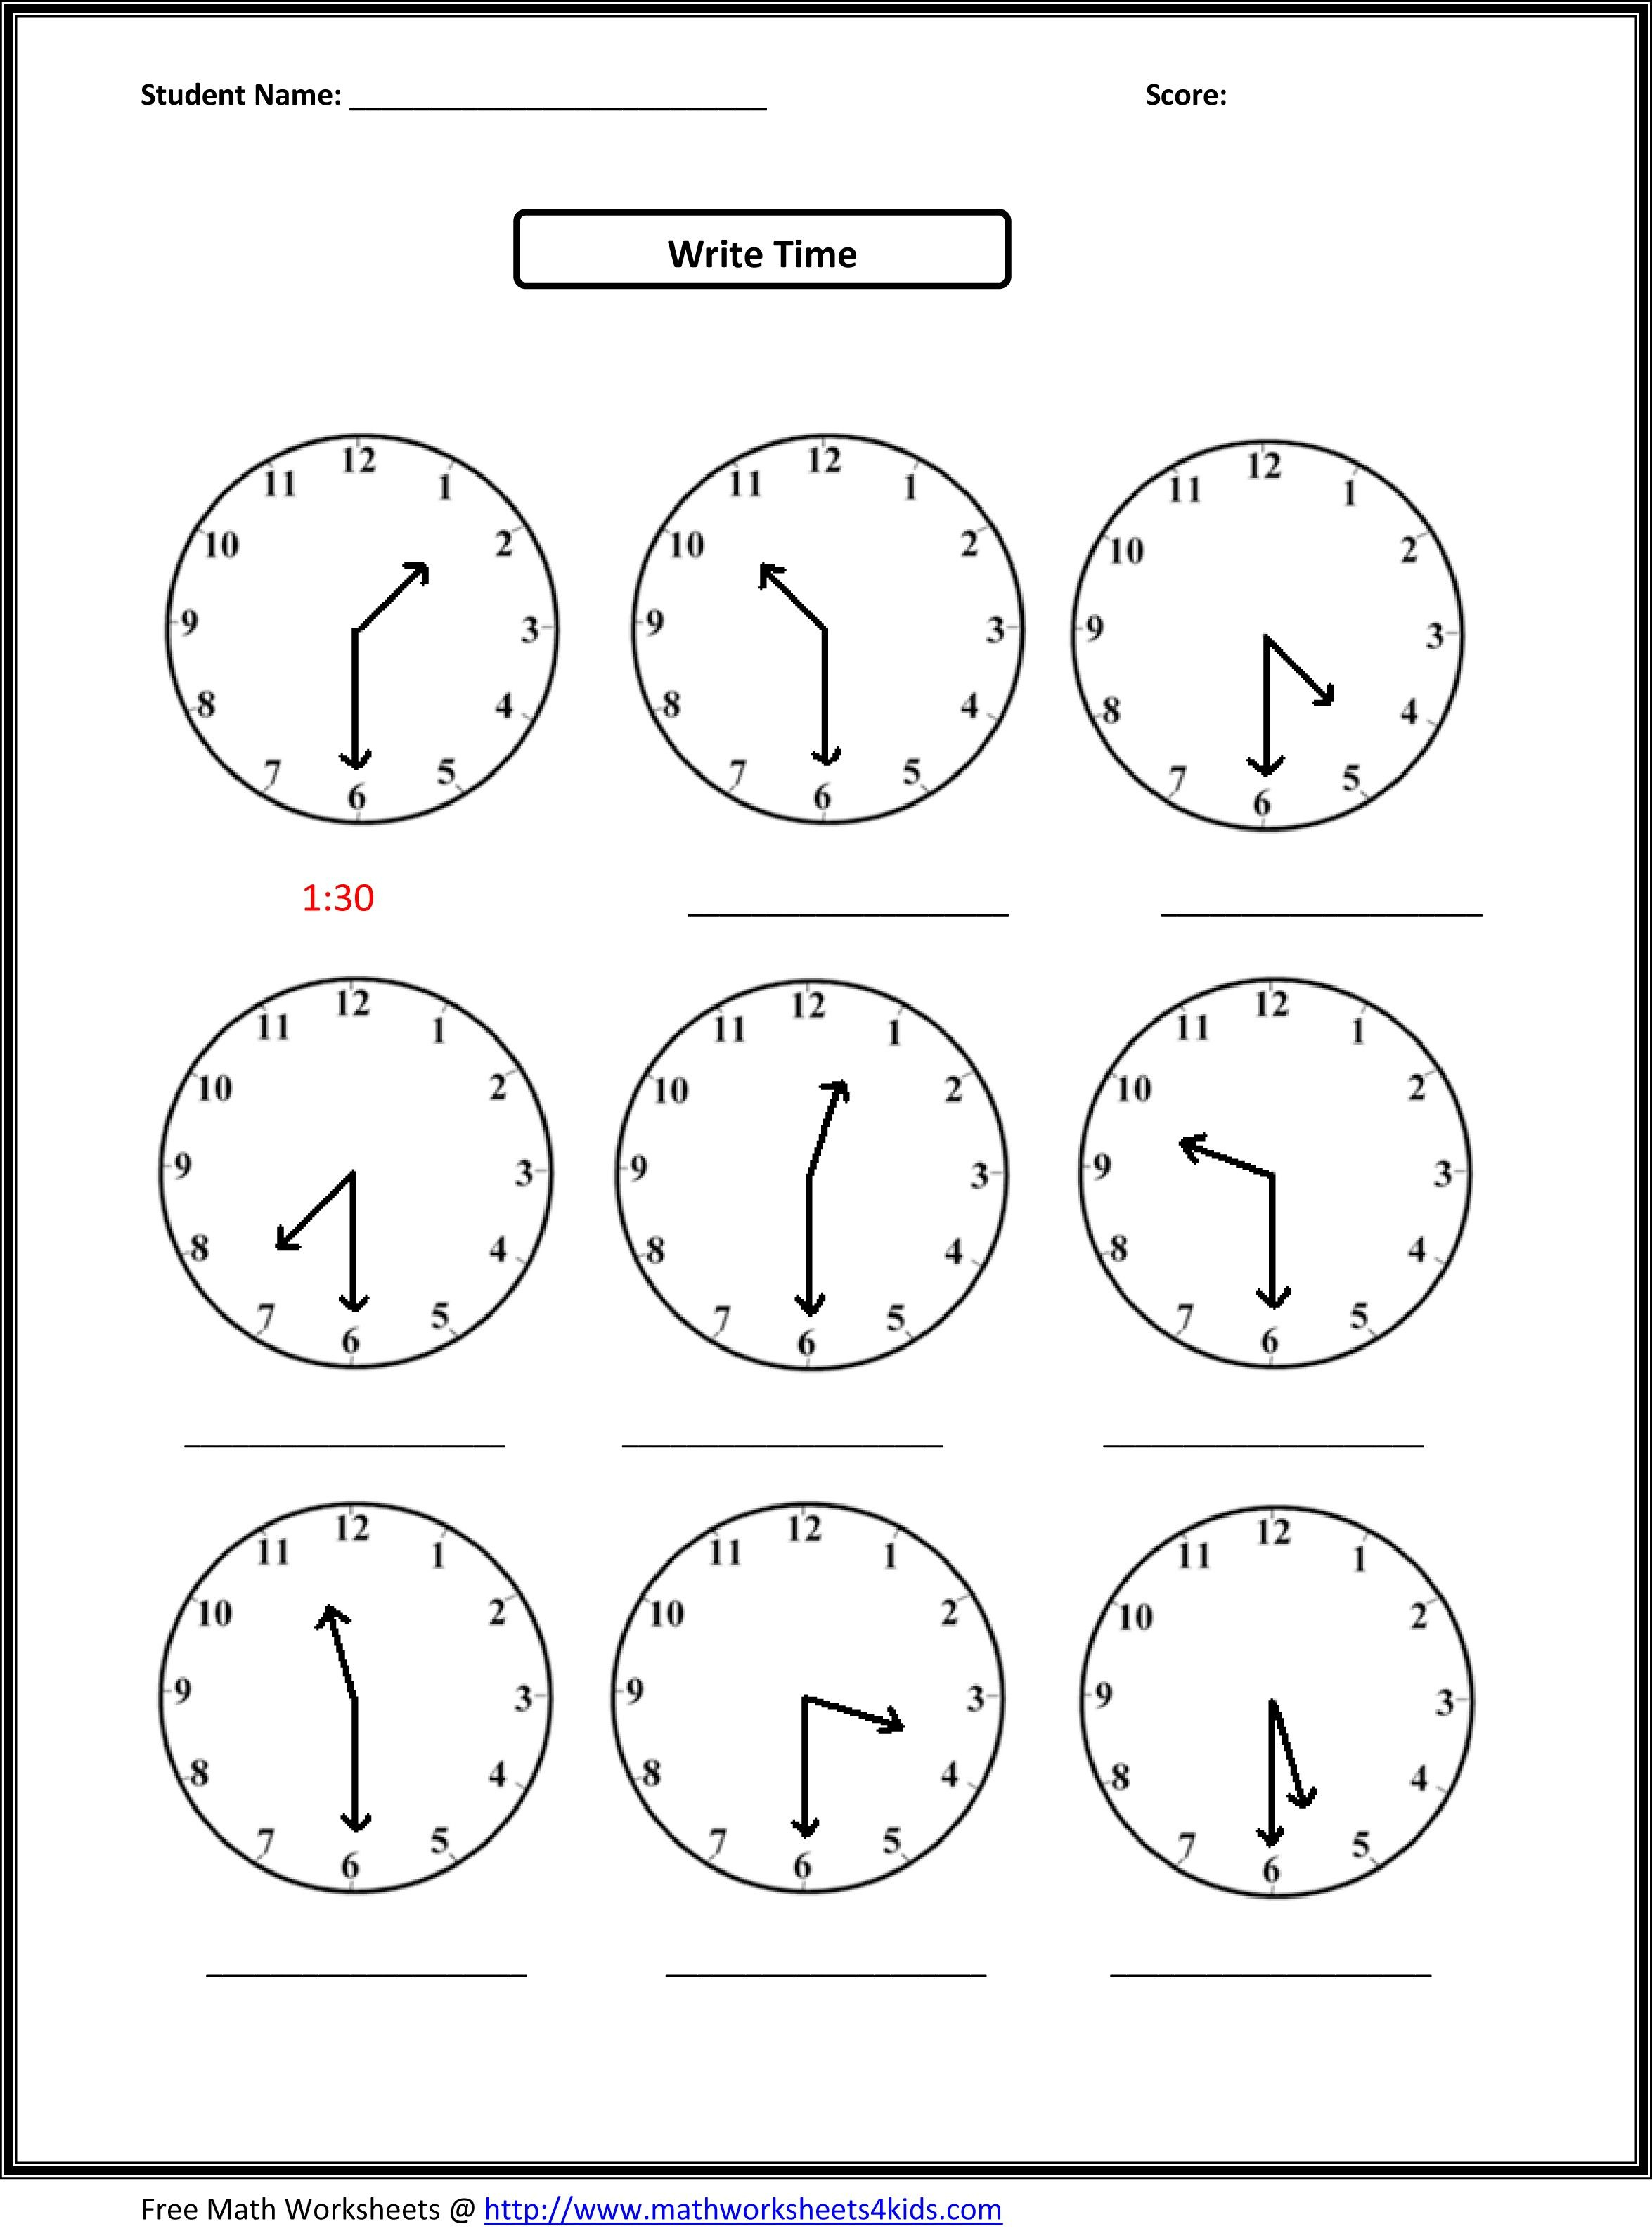 2Nd Grade Free Worksheets Math | Math: Time/measurement | 2Nd Grade | Second Grade Printable Worksheets